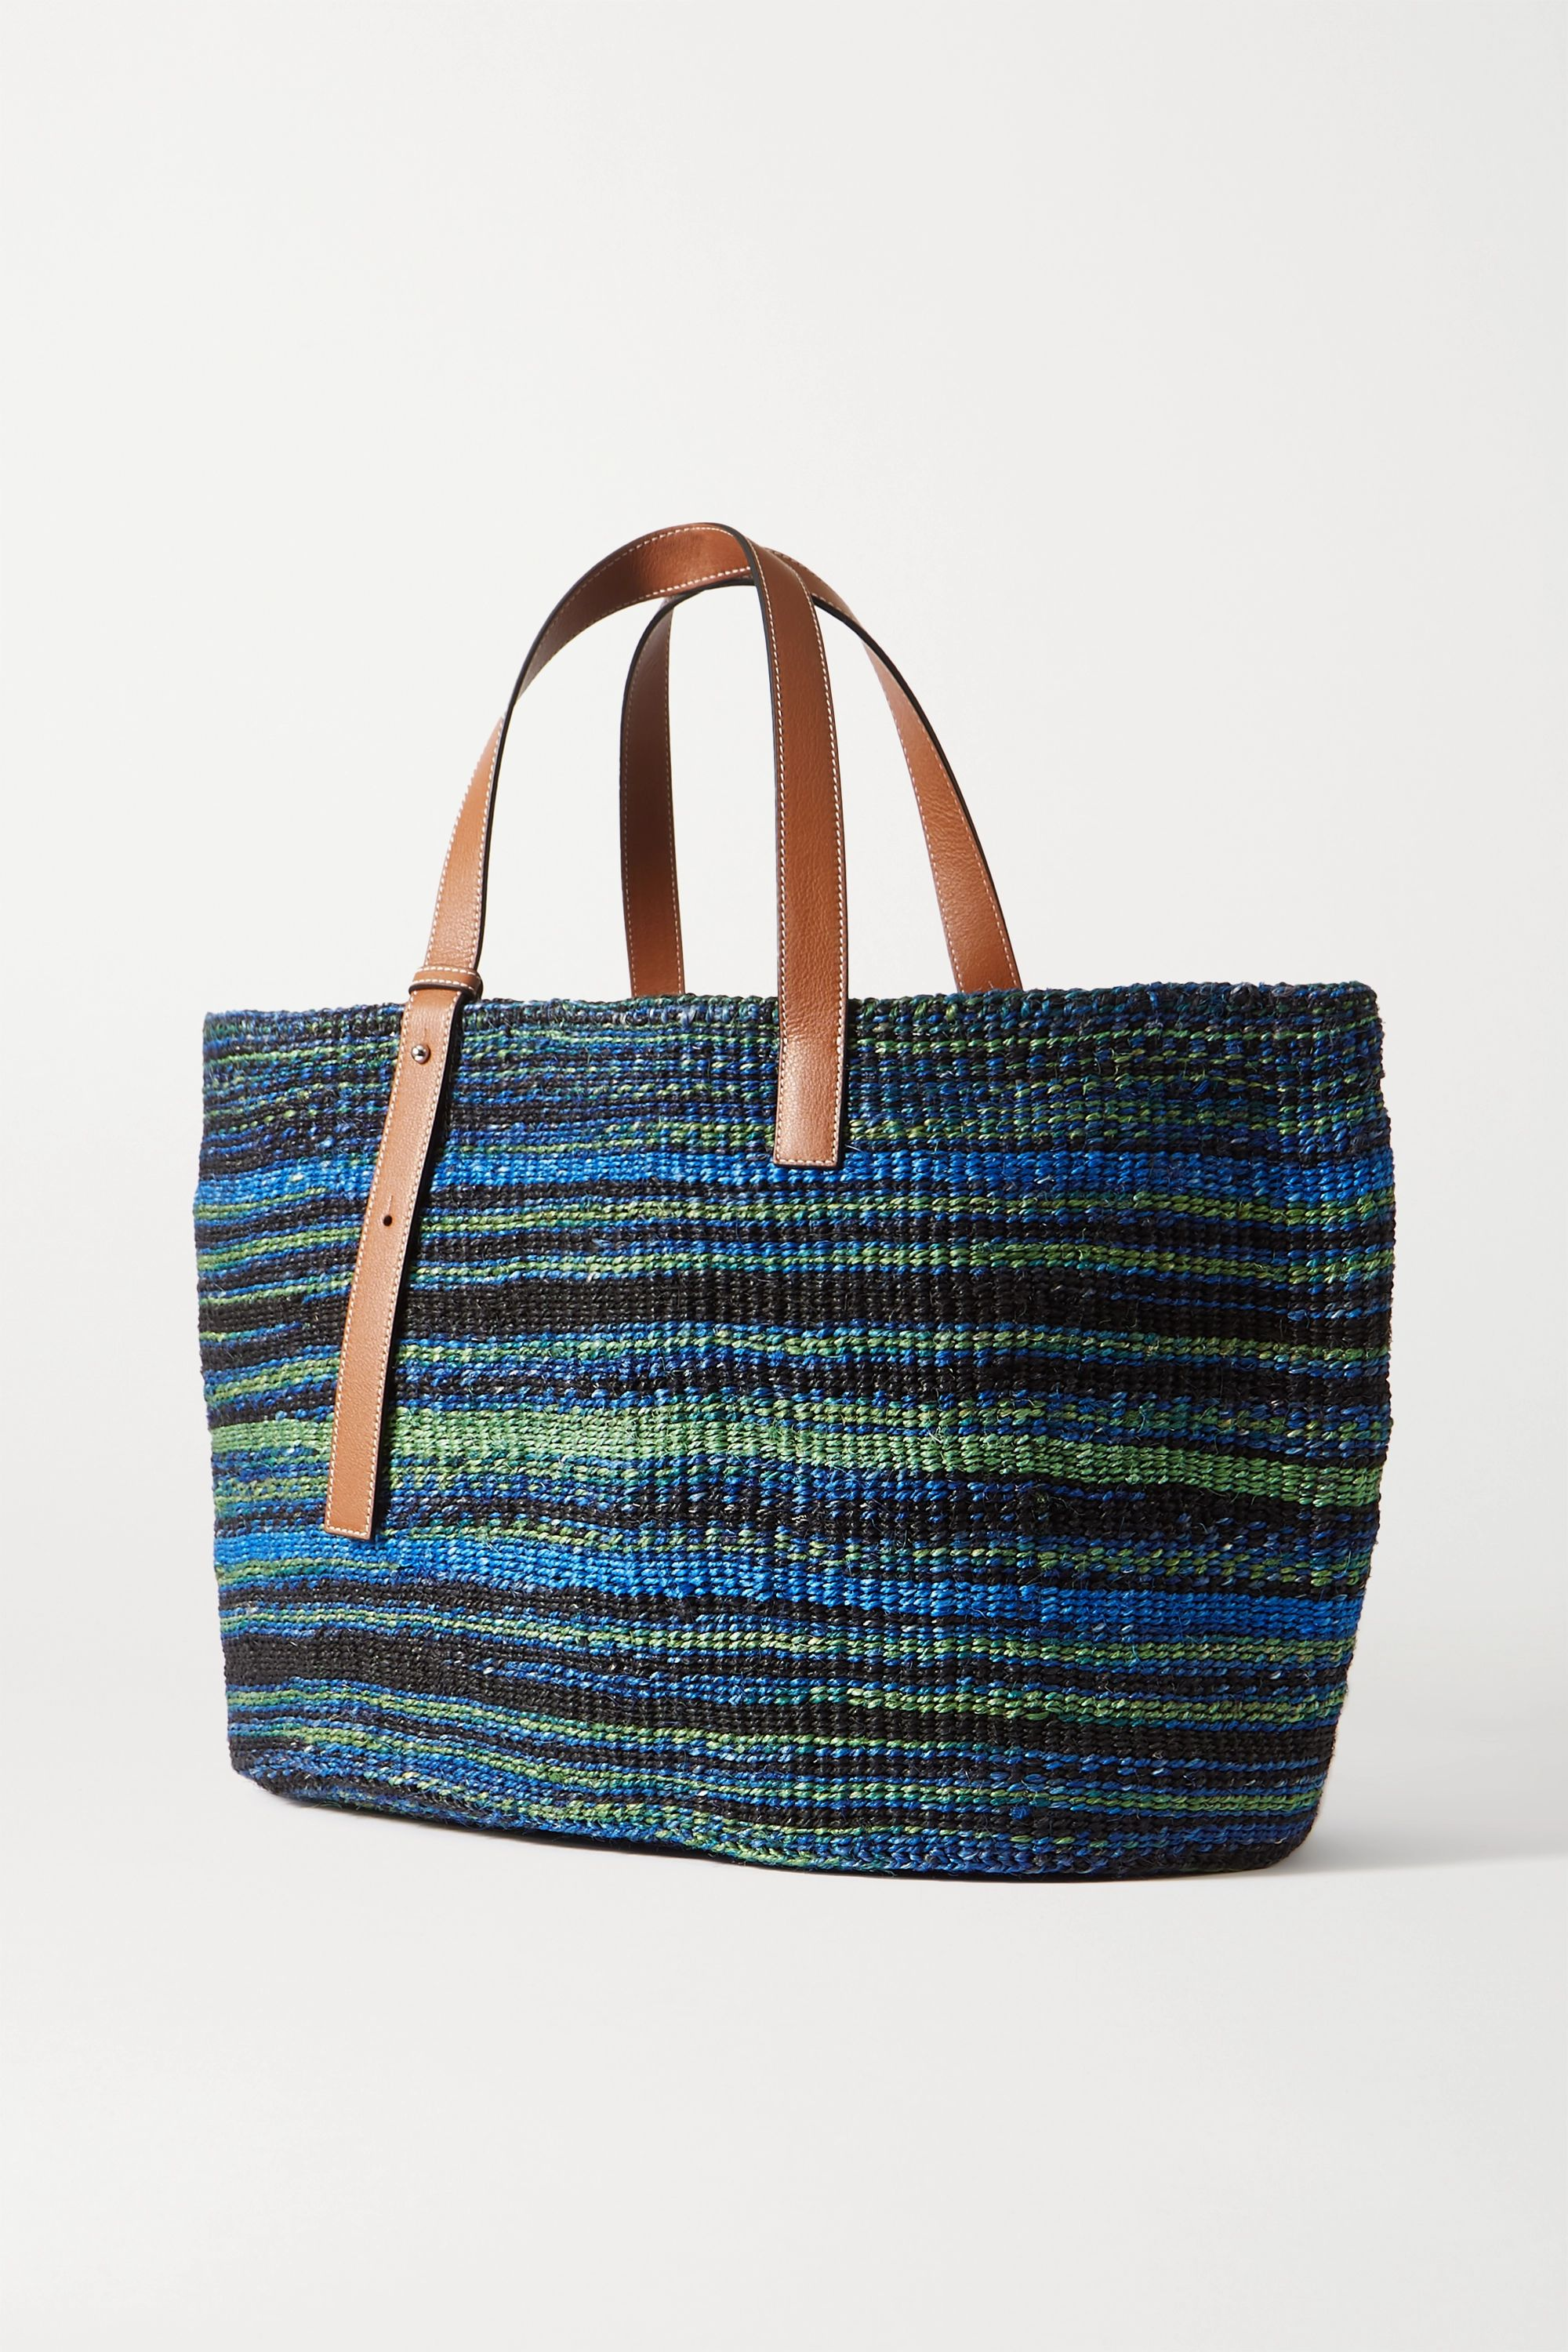 Loewe + Paula's Ibiza large leather-trimmed sisal tote